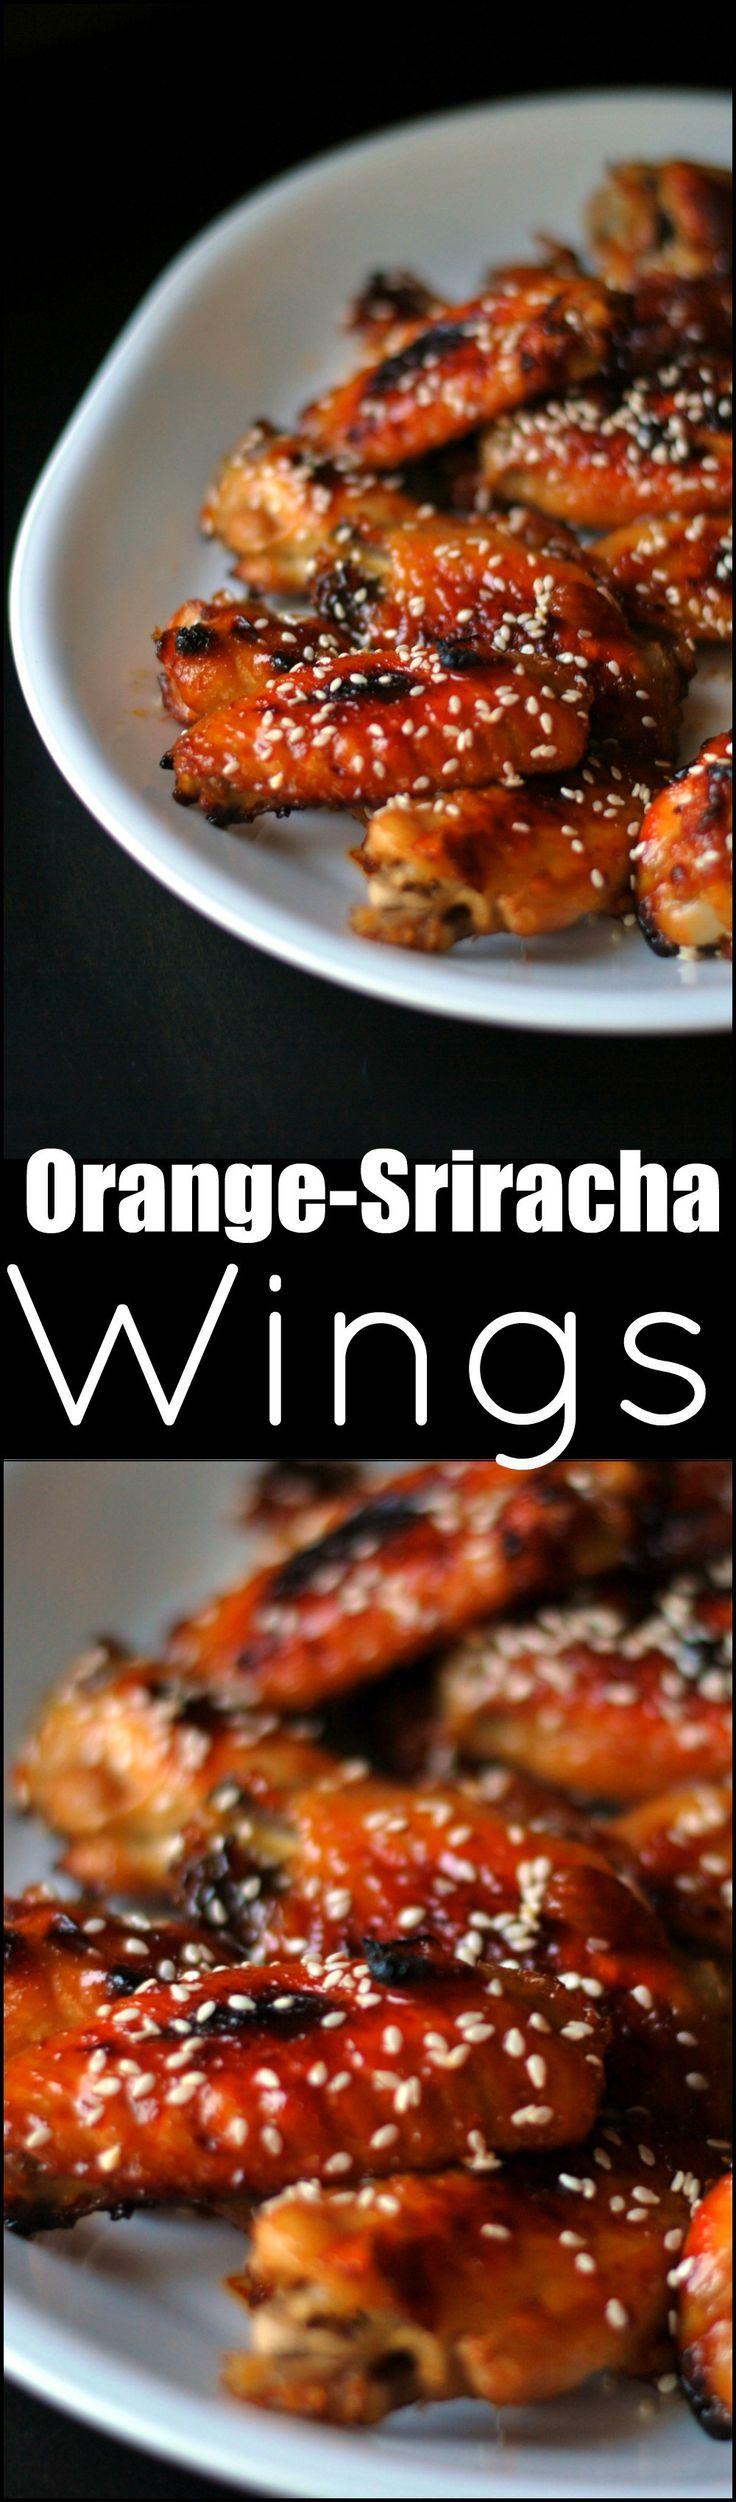 Tasty Sriracha wings recipes on Pinterest | Honey siracha wings ...